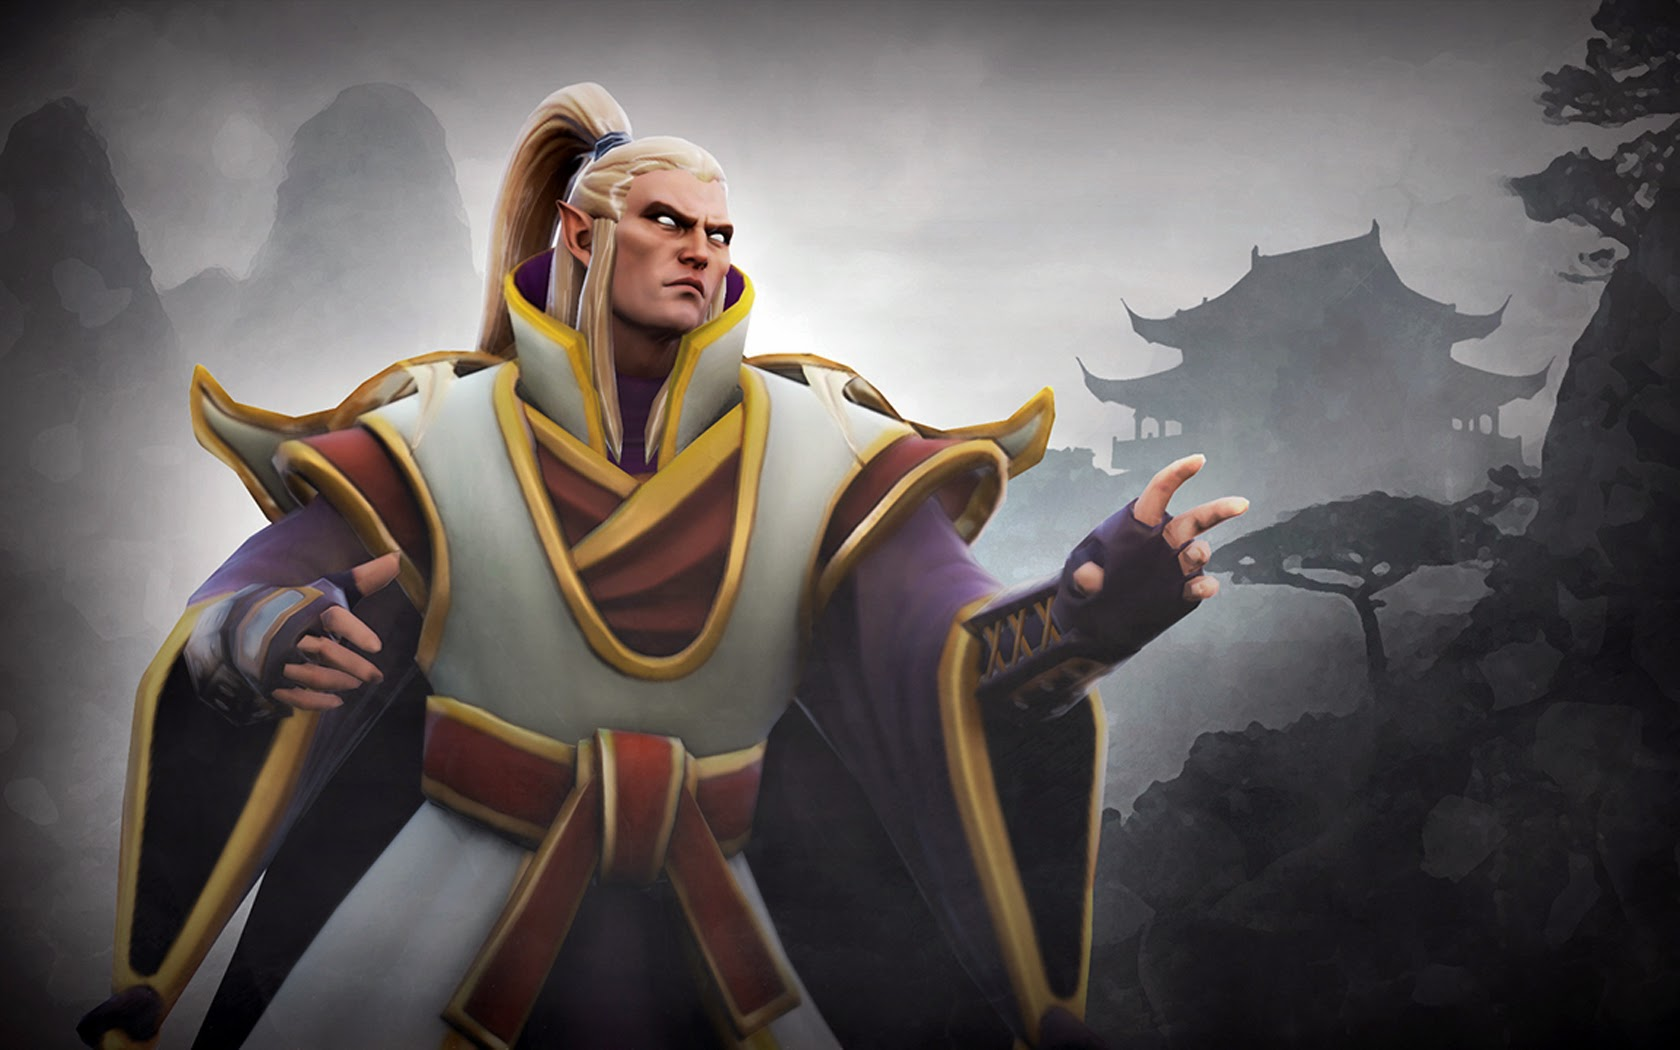 dota 2 image hero hd wallpaper 1680x1050 7c 1680x1050